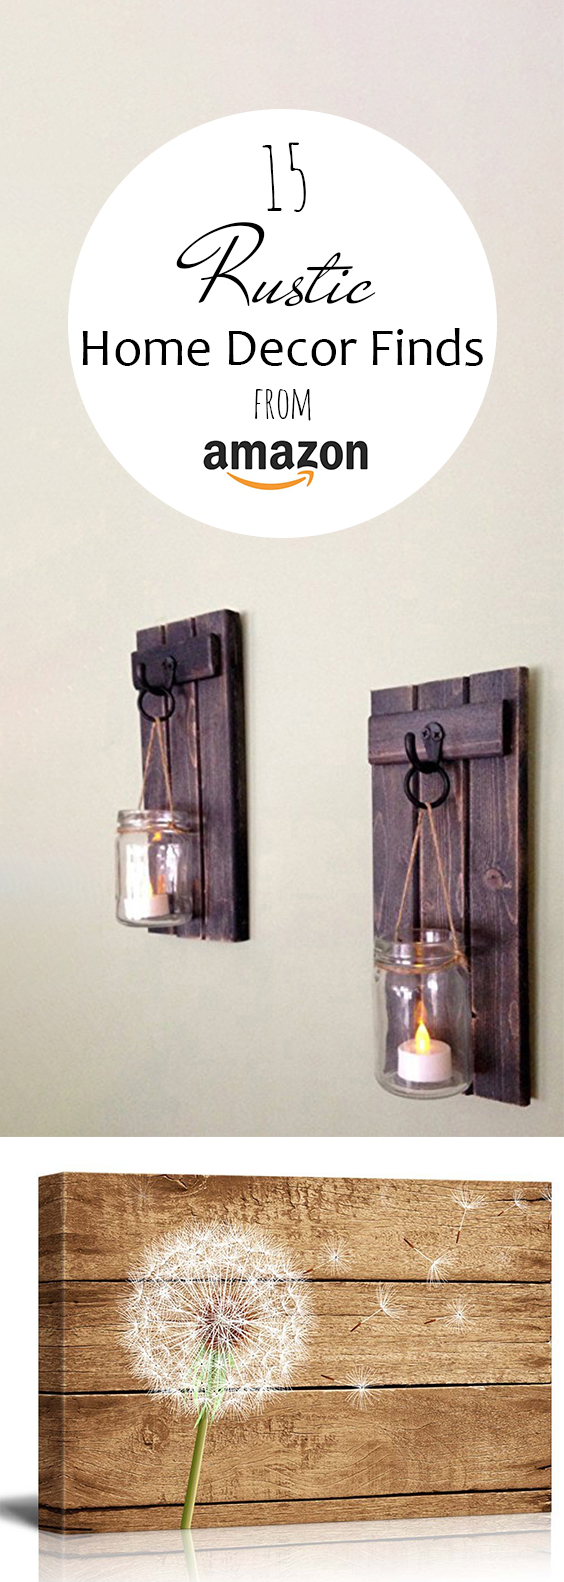 15 rustic home decor finds from amazon page 20 of 20 for Home decorations amazon